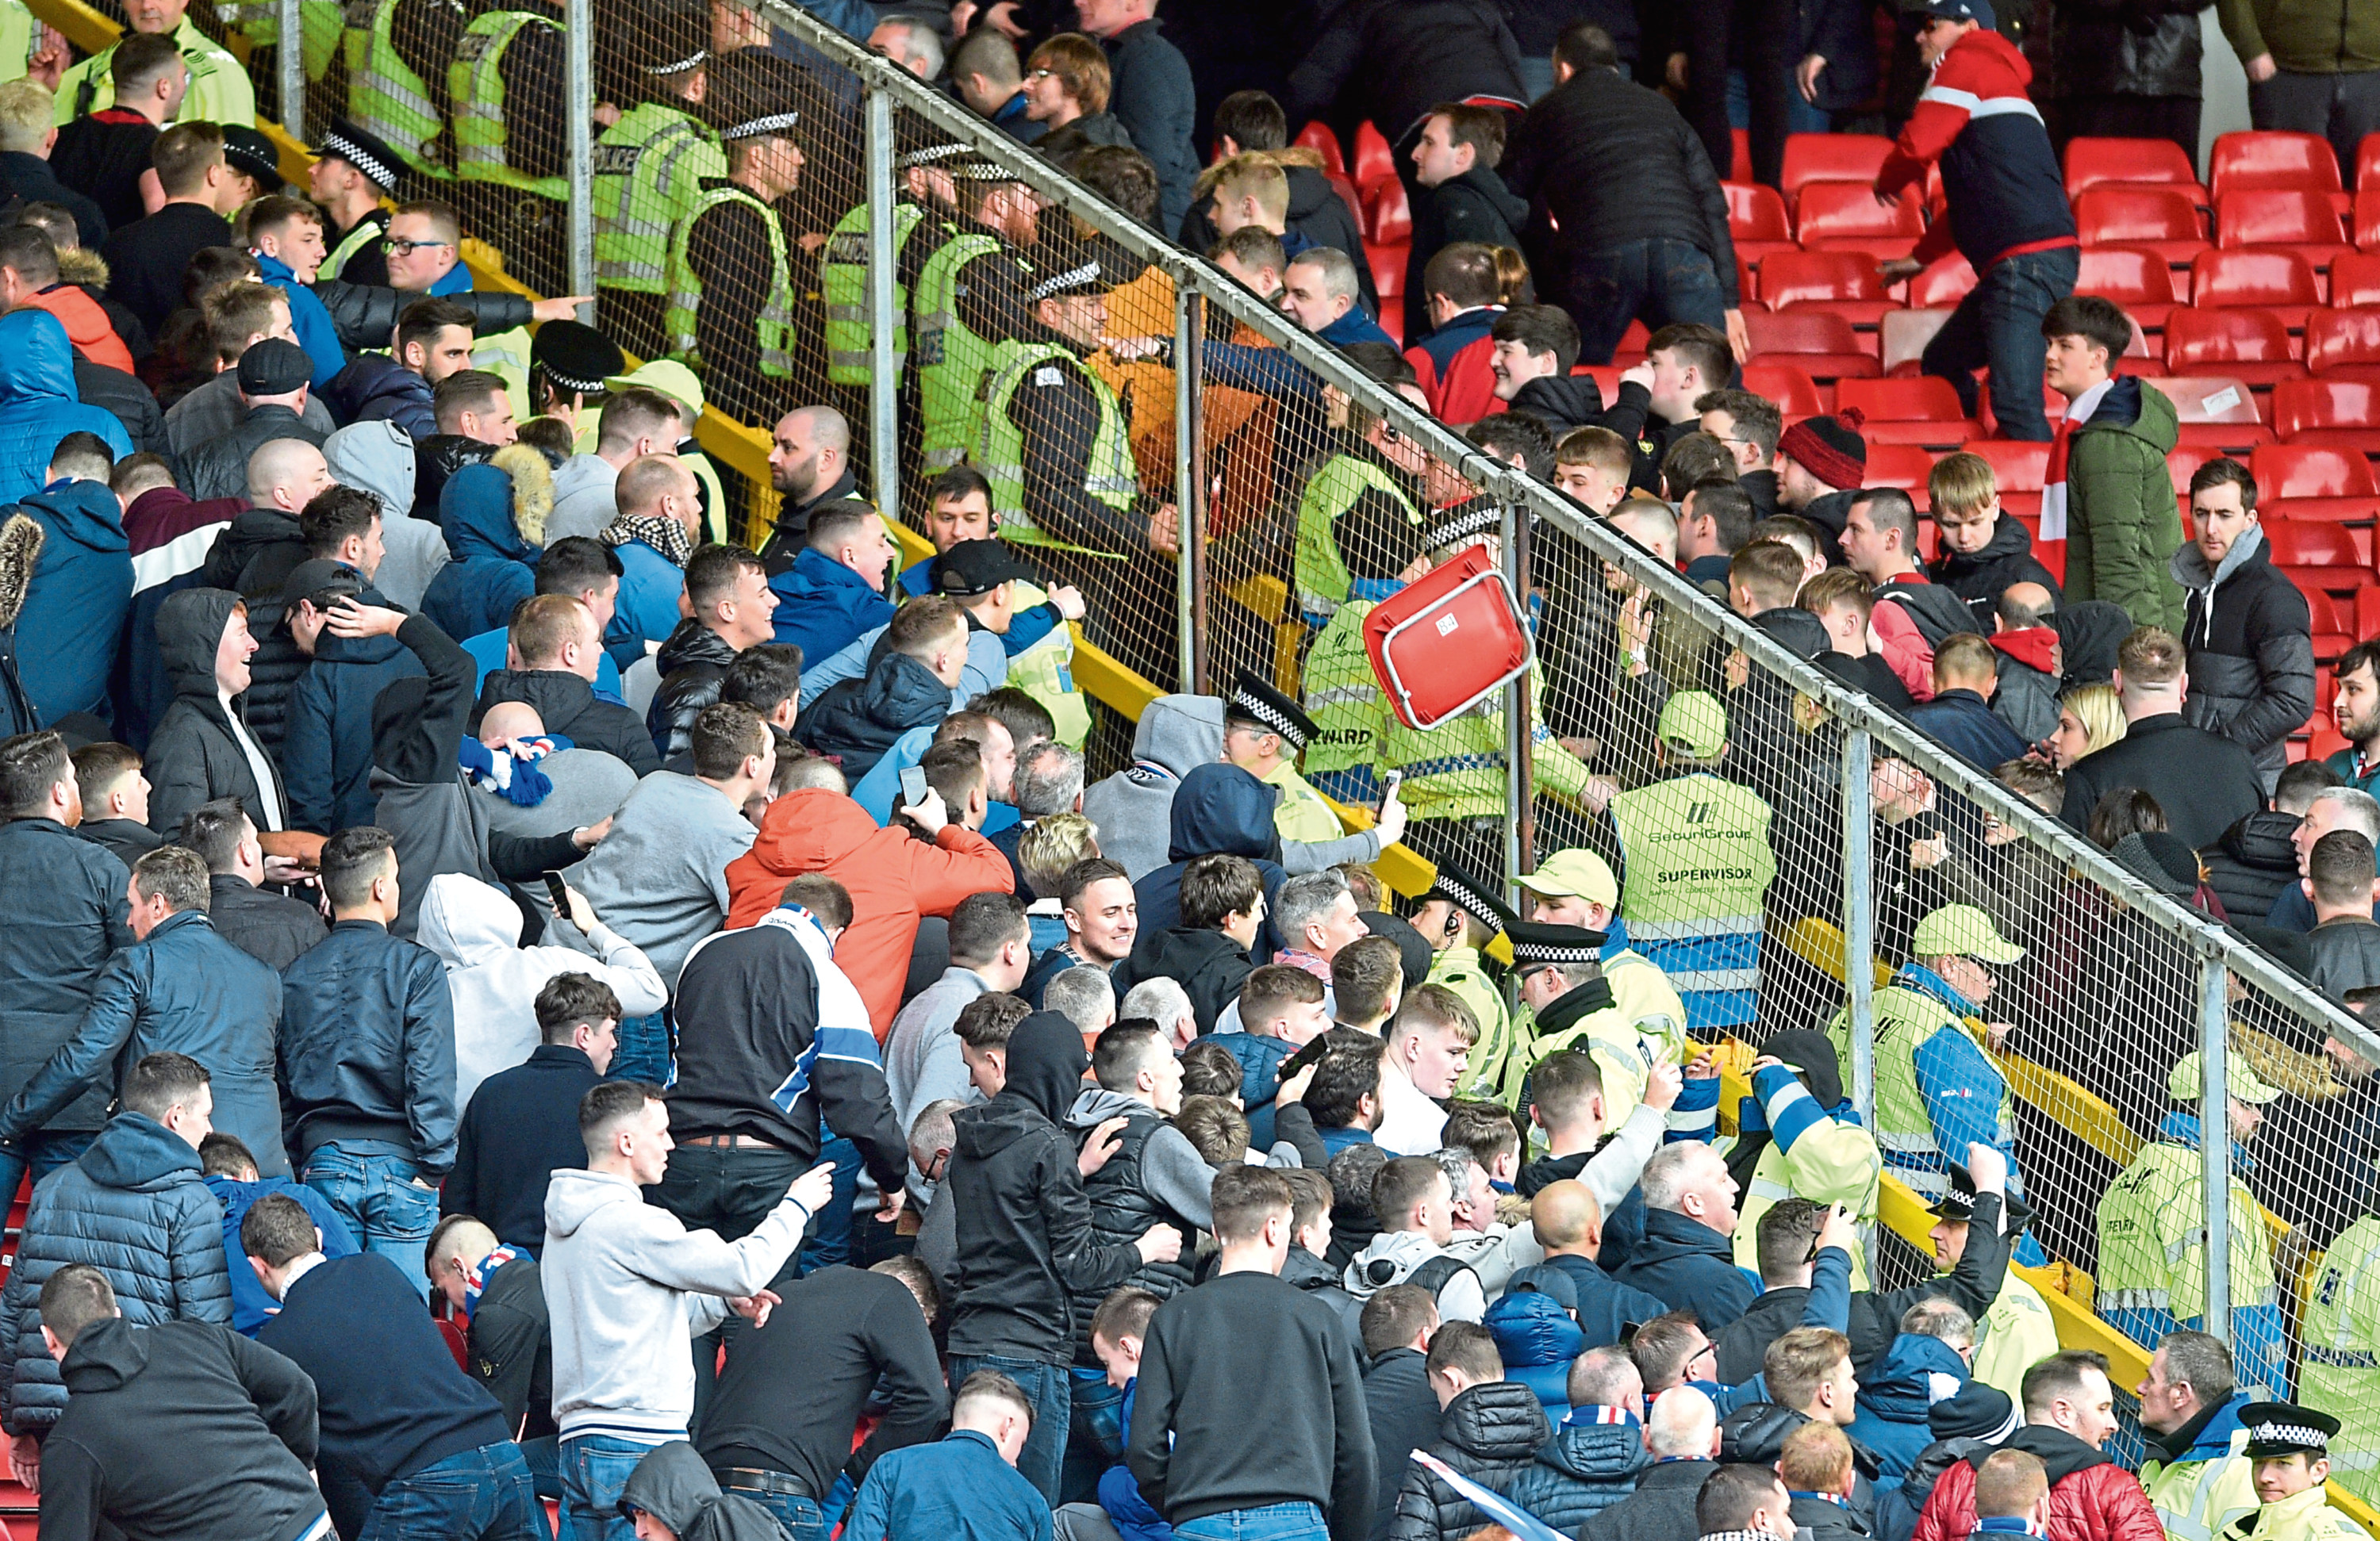 A seat is thrown into the Aberdeen area of fans after full time